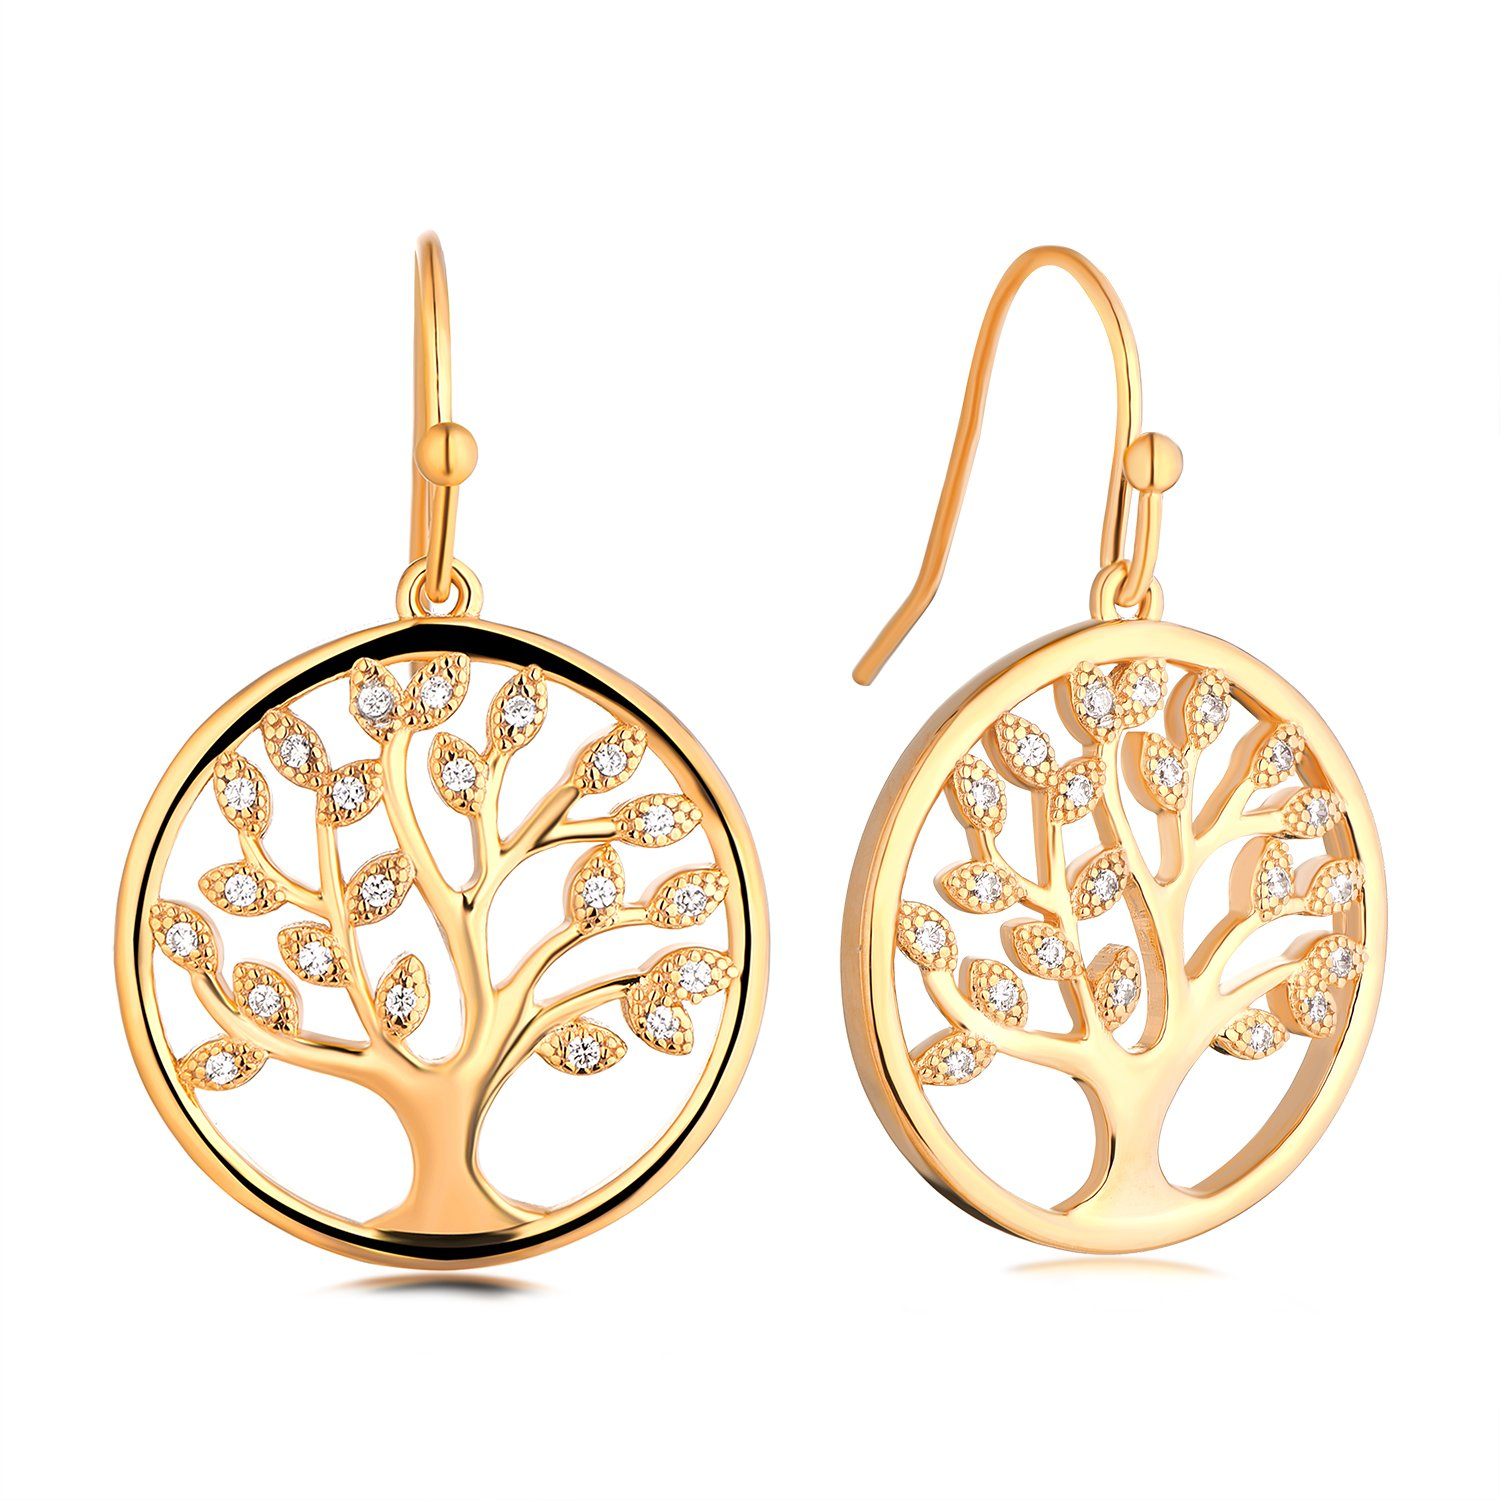 JO WISDOM Tree Earrings 925 Sterling Silver Gold Cubic Zirconia Family Tree of Life Gold Hook Dangle & Drop Earrings